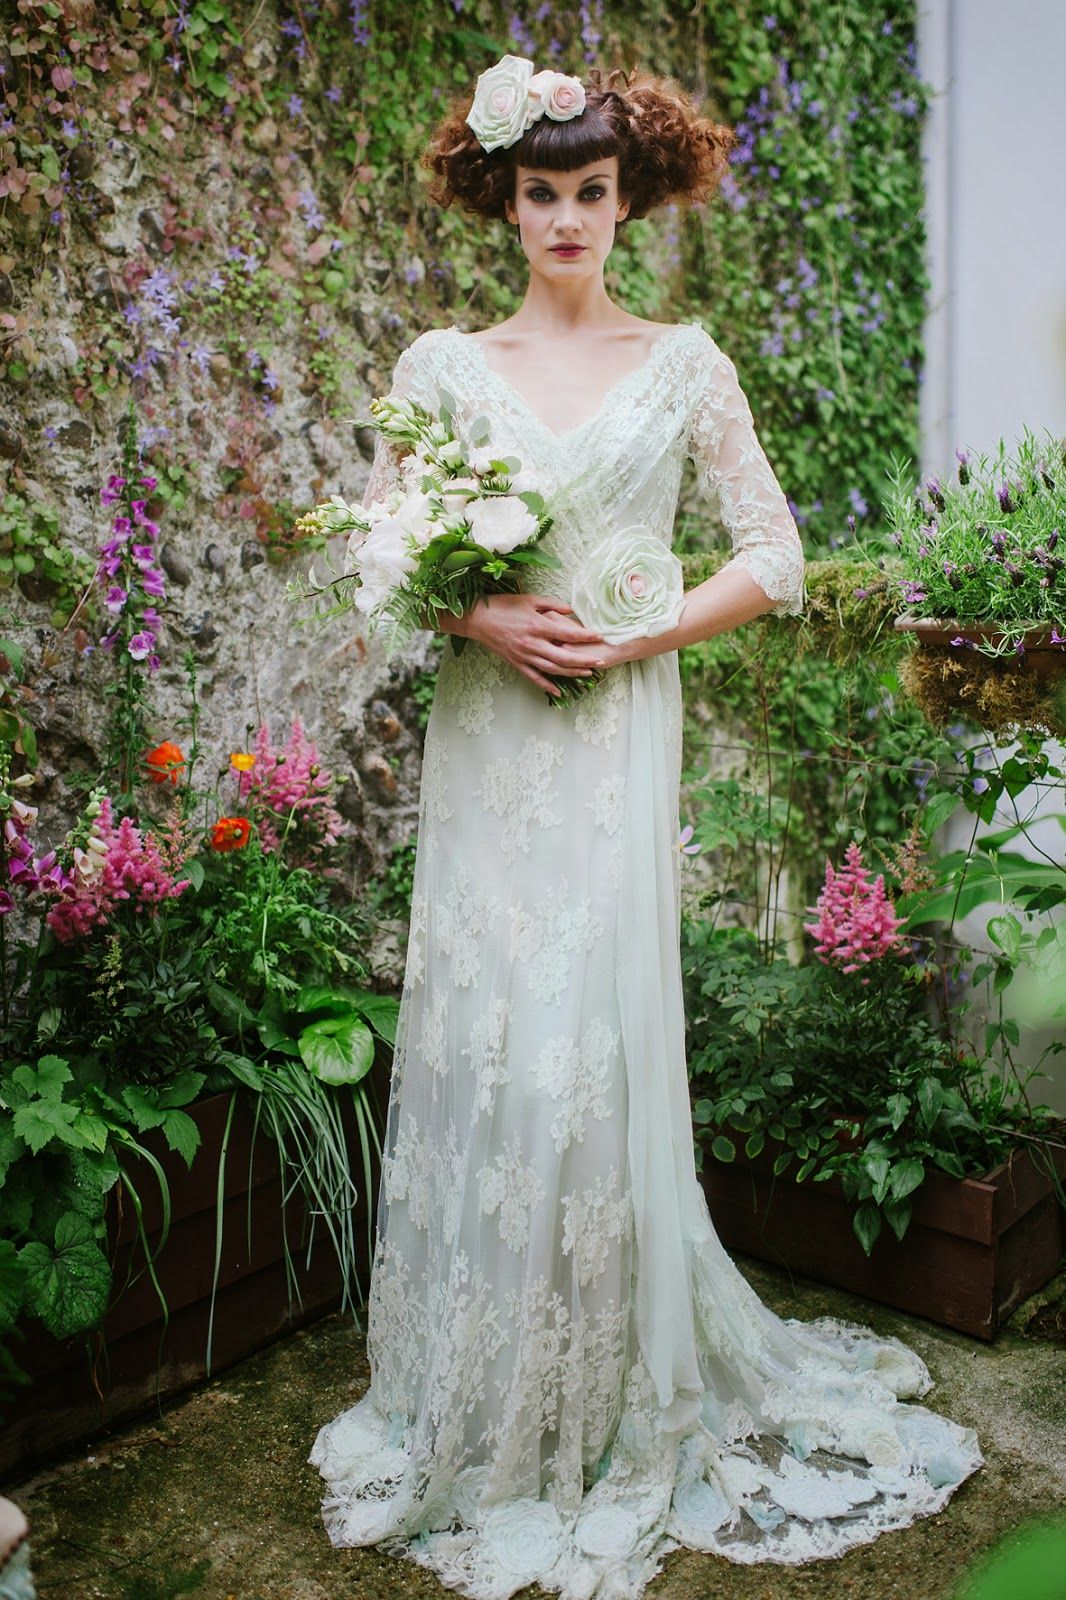 Green and white wedding dress  Joanne Fleming Design uLangtryuafoam French lace and silk